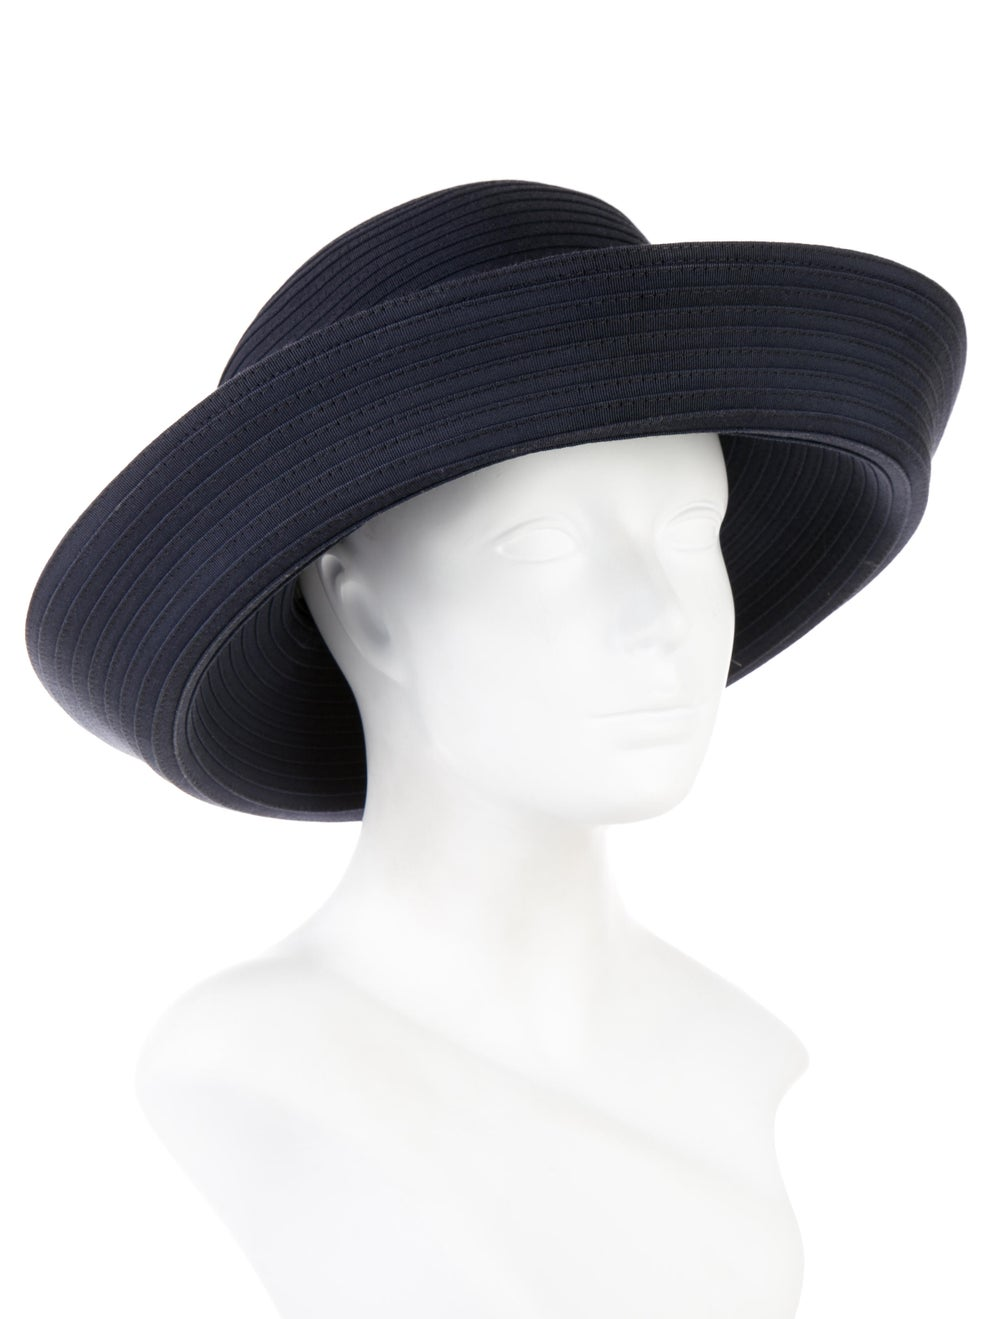 Eric Javits Wide-Brimmed Woven Hat Navy - image 3